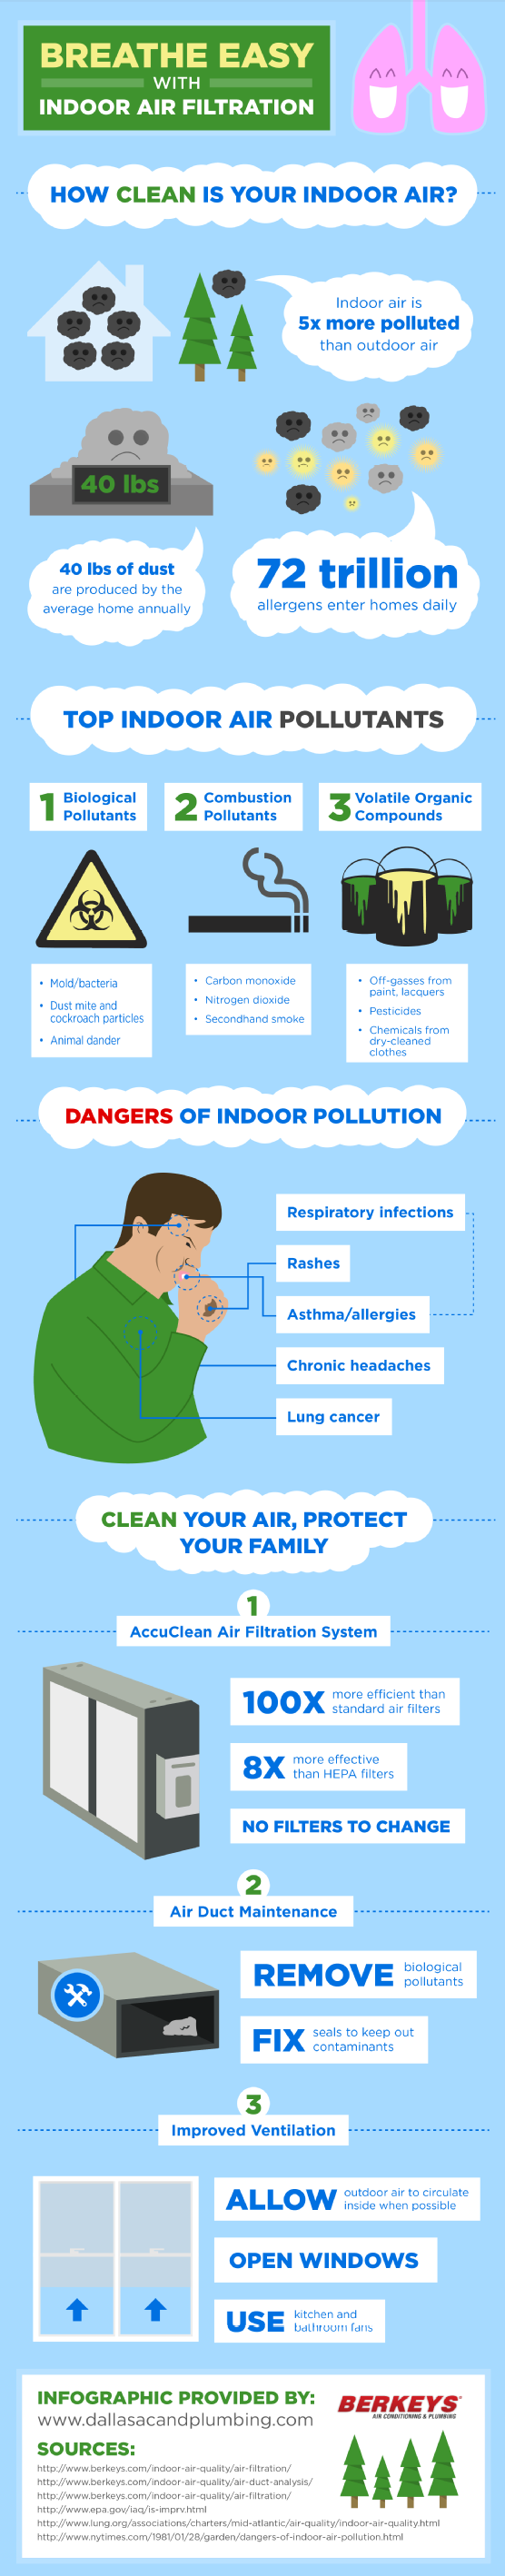 breathe-easy-with-indoor-air-filtration_